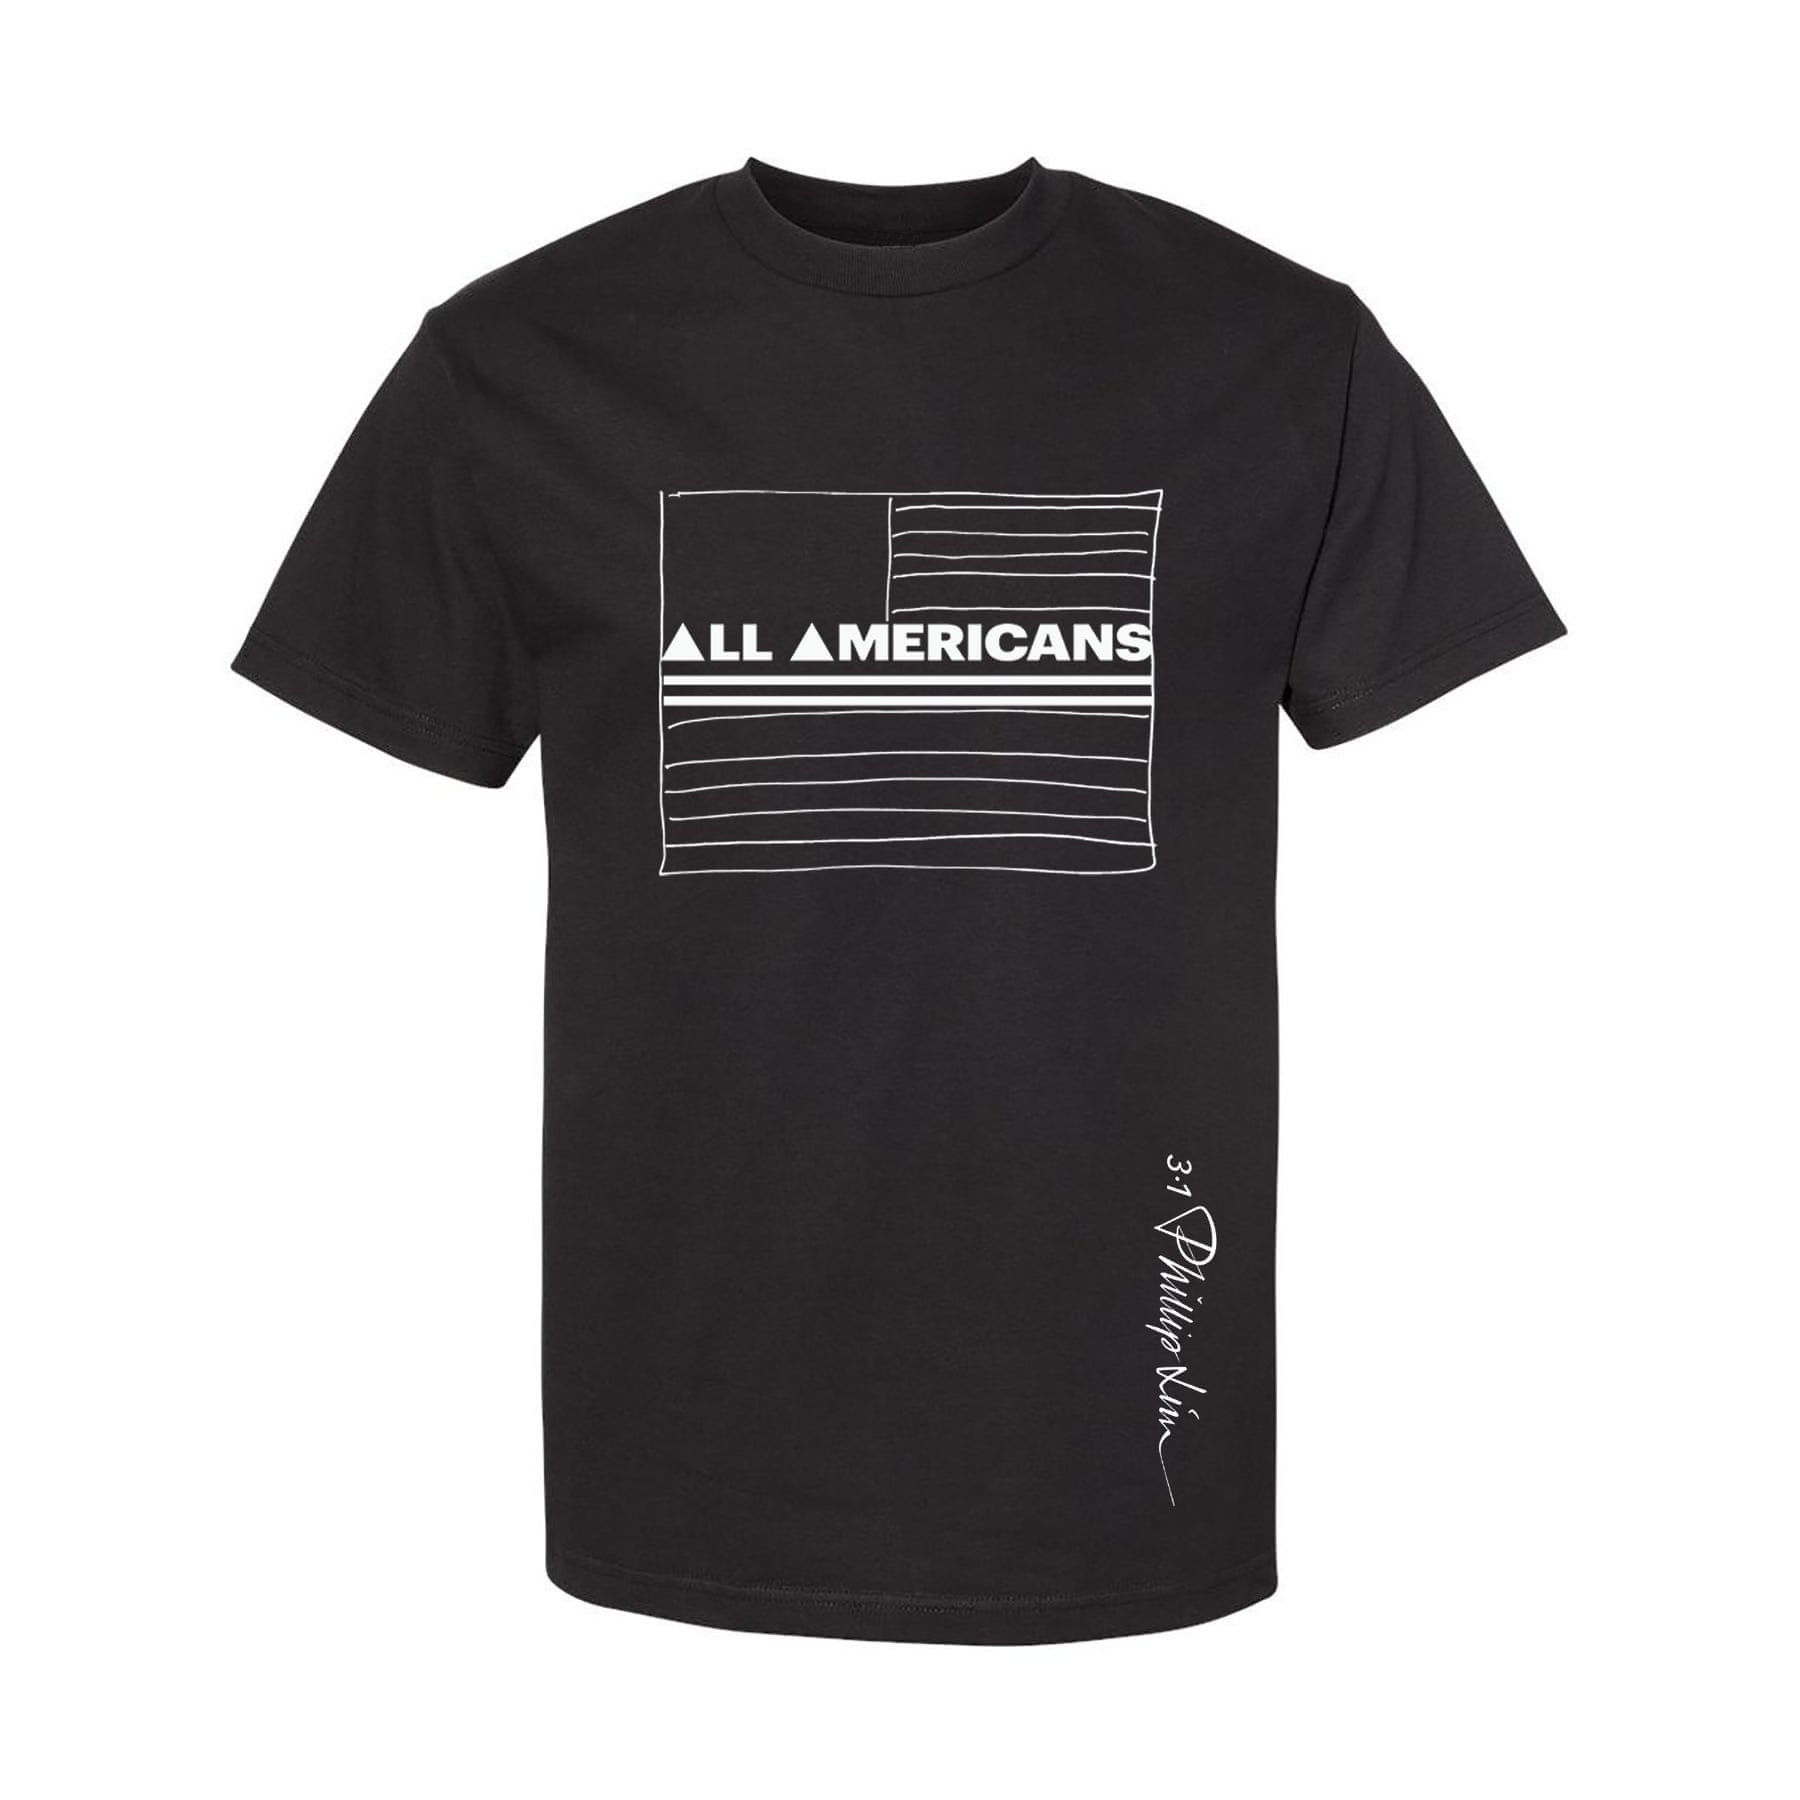 Phillip Lim's T-shirt for the All Americans Movement